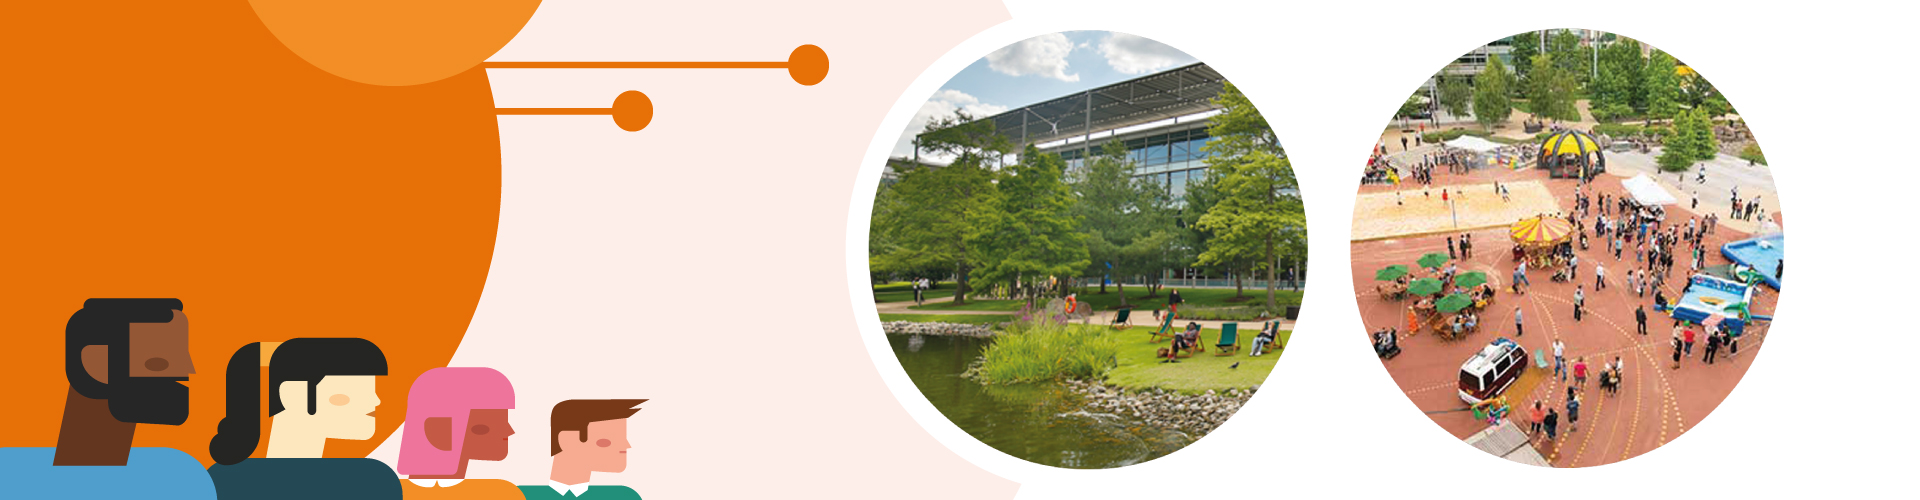 Workplace Week 2017: Chiswick Park